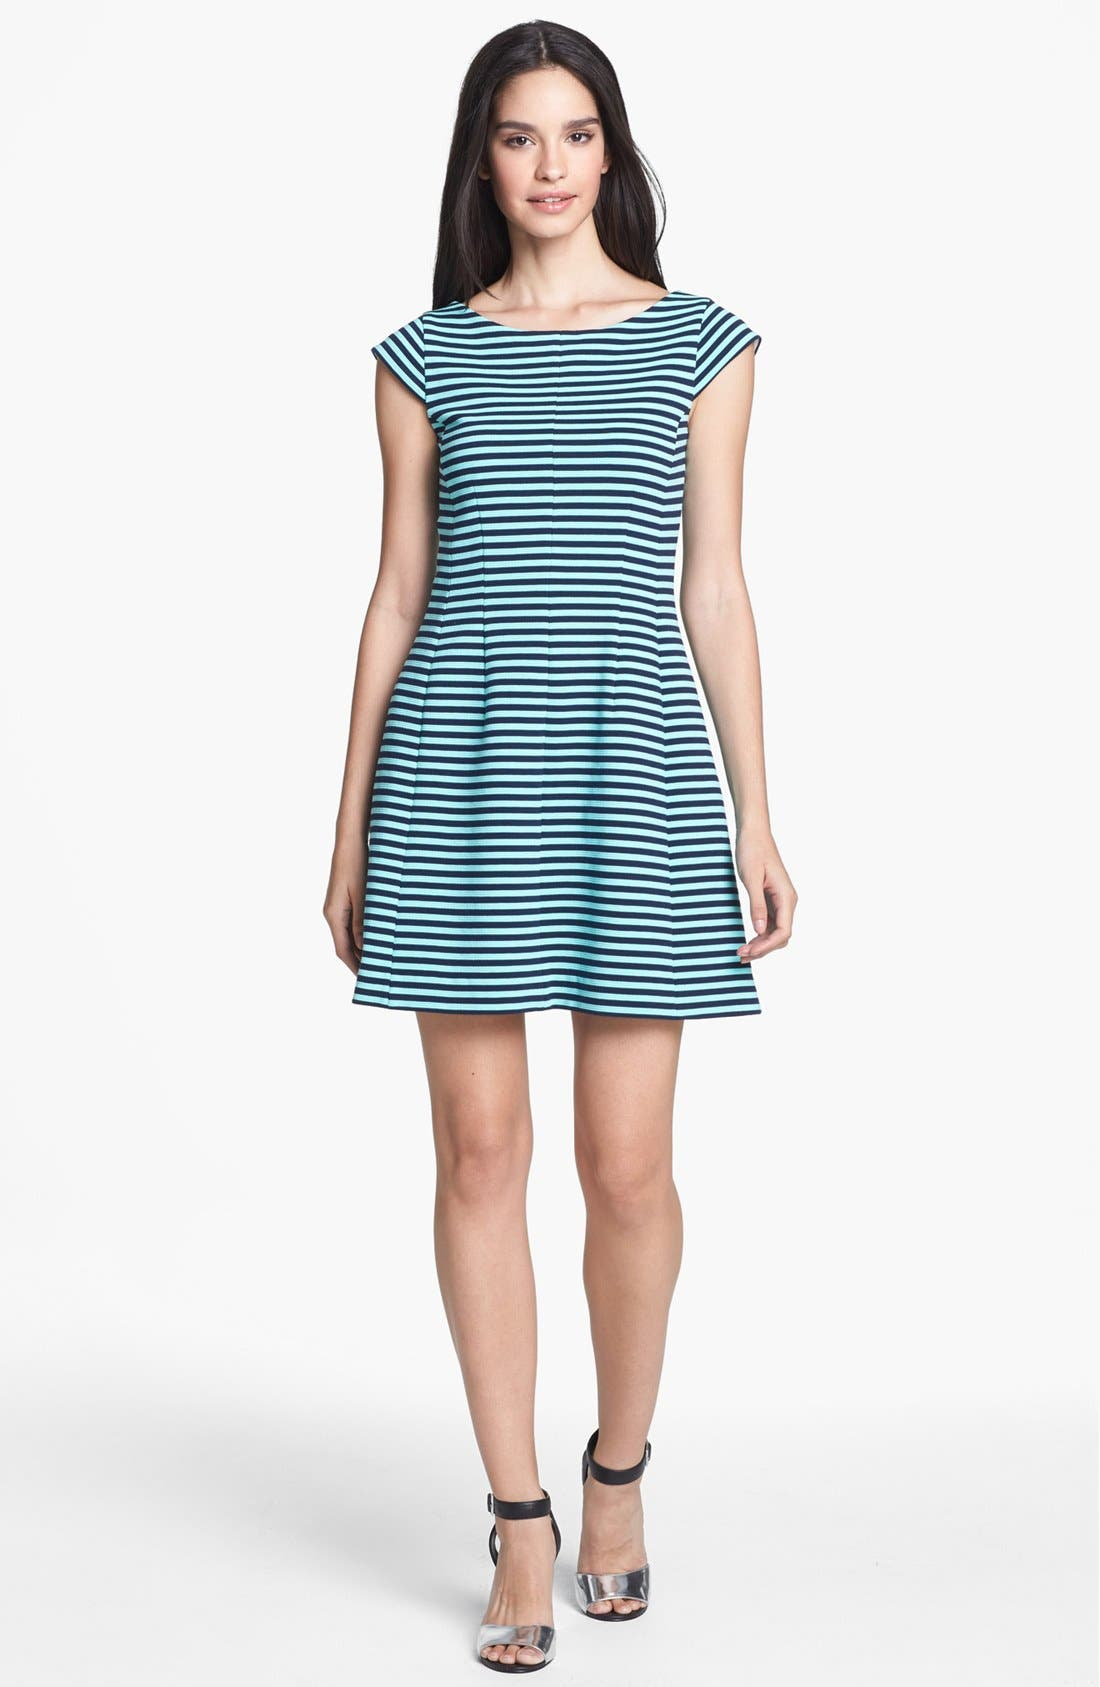 Alternate Image 1 Selected - Lilly Pulitzer® 'Briella' Stripe Fit & Flare Dress